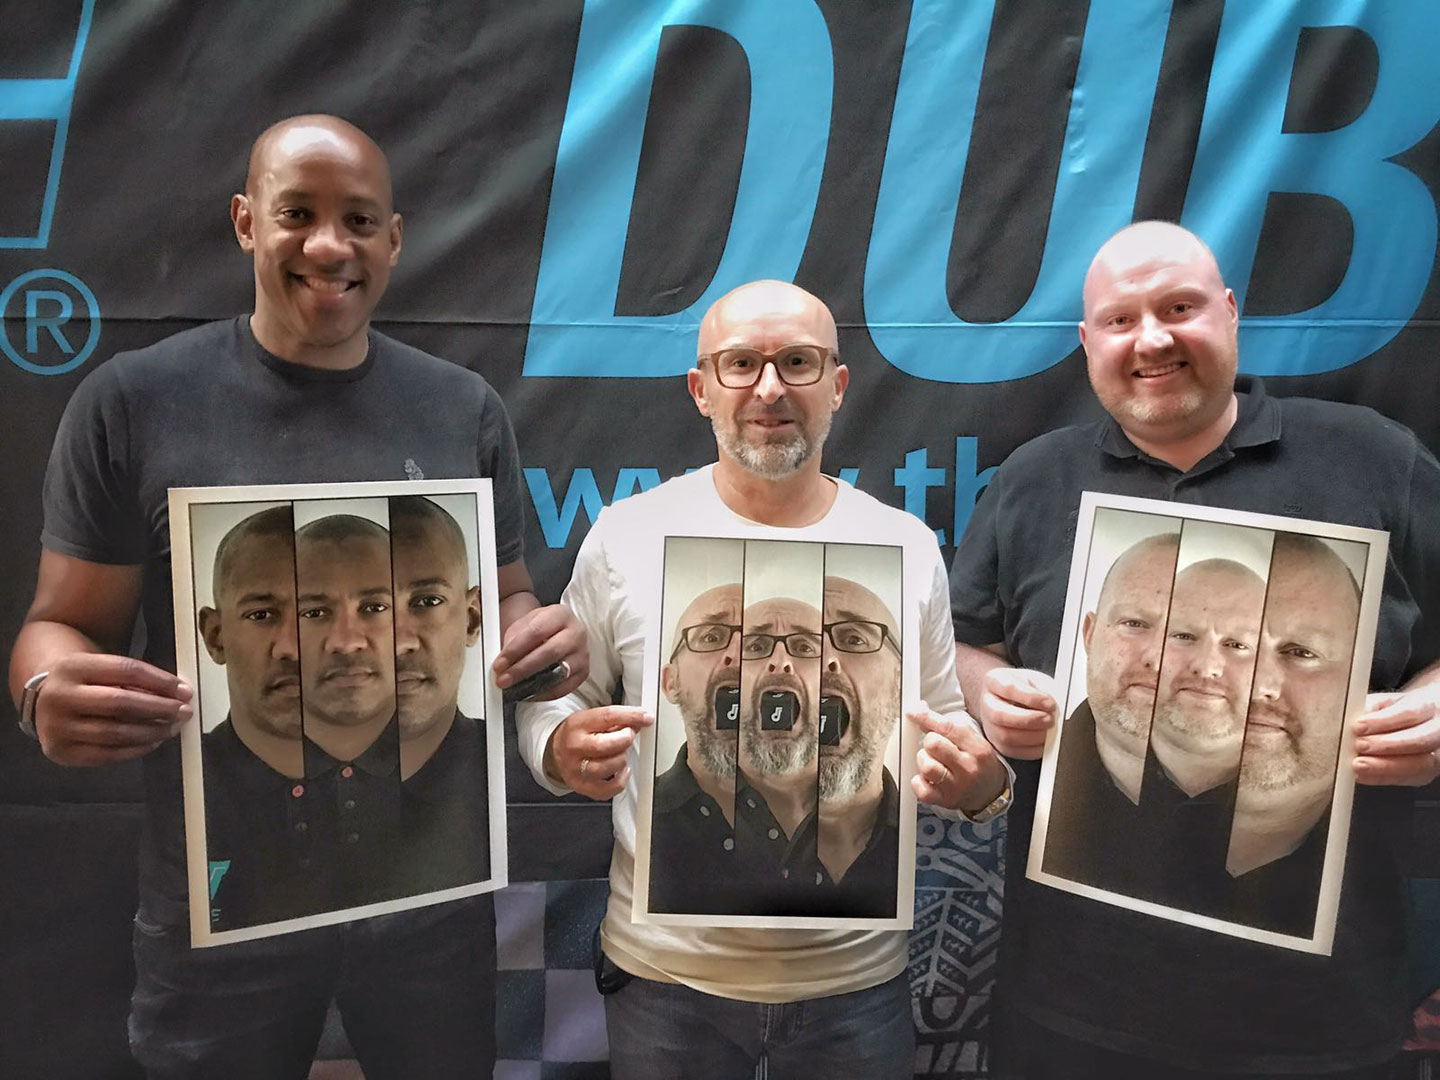 Dion Dublin, Mike Dolbear and Scotty, 3 Triplefaces amigos